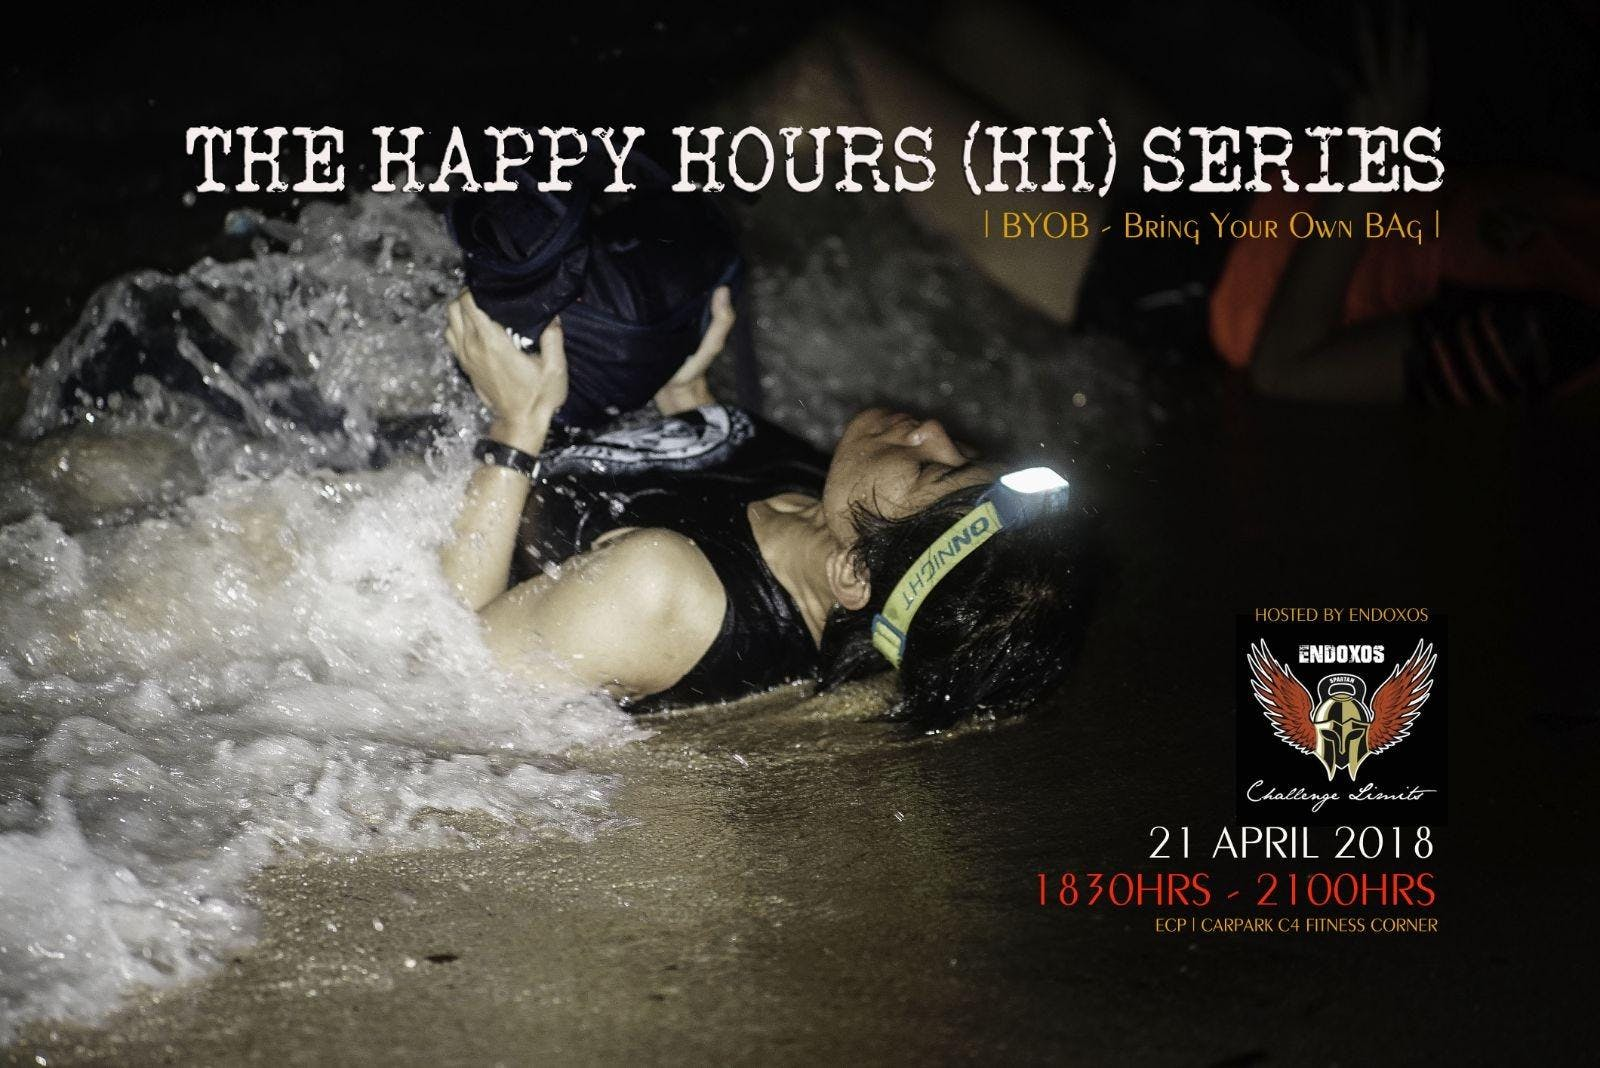 The Happy Hours Series hosted by ENDOXOS